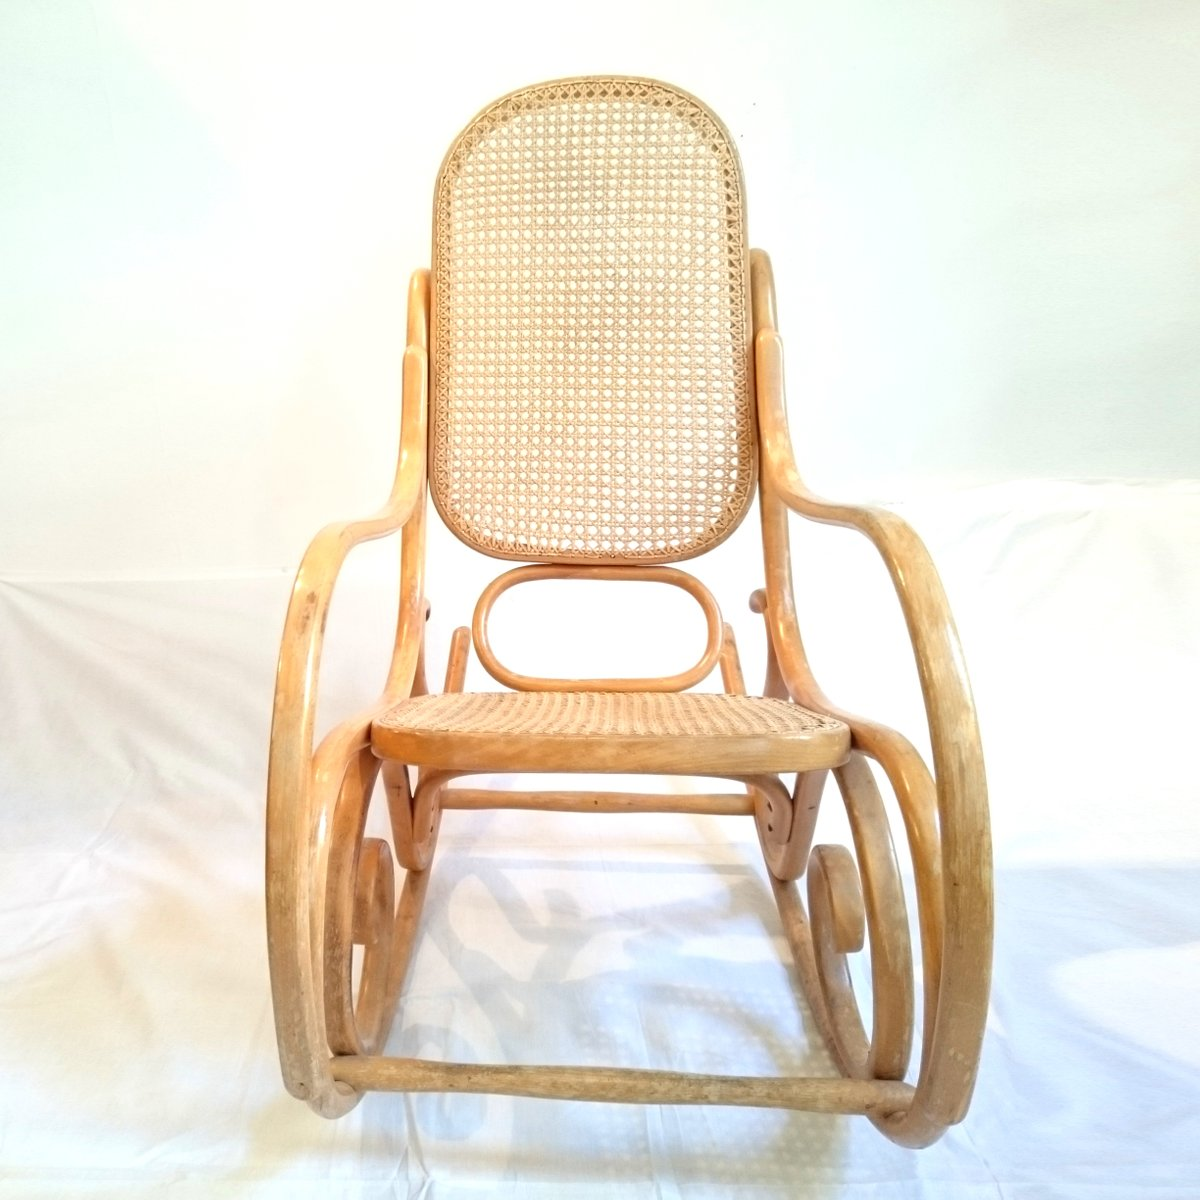 dinette bentwood rocking chair from habitat 1970s for sale at pamono. Black Bedroom Furniture Sets. Home Design Ideas